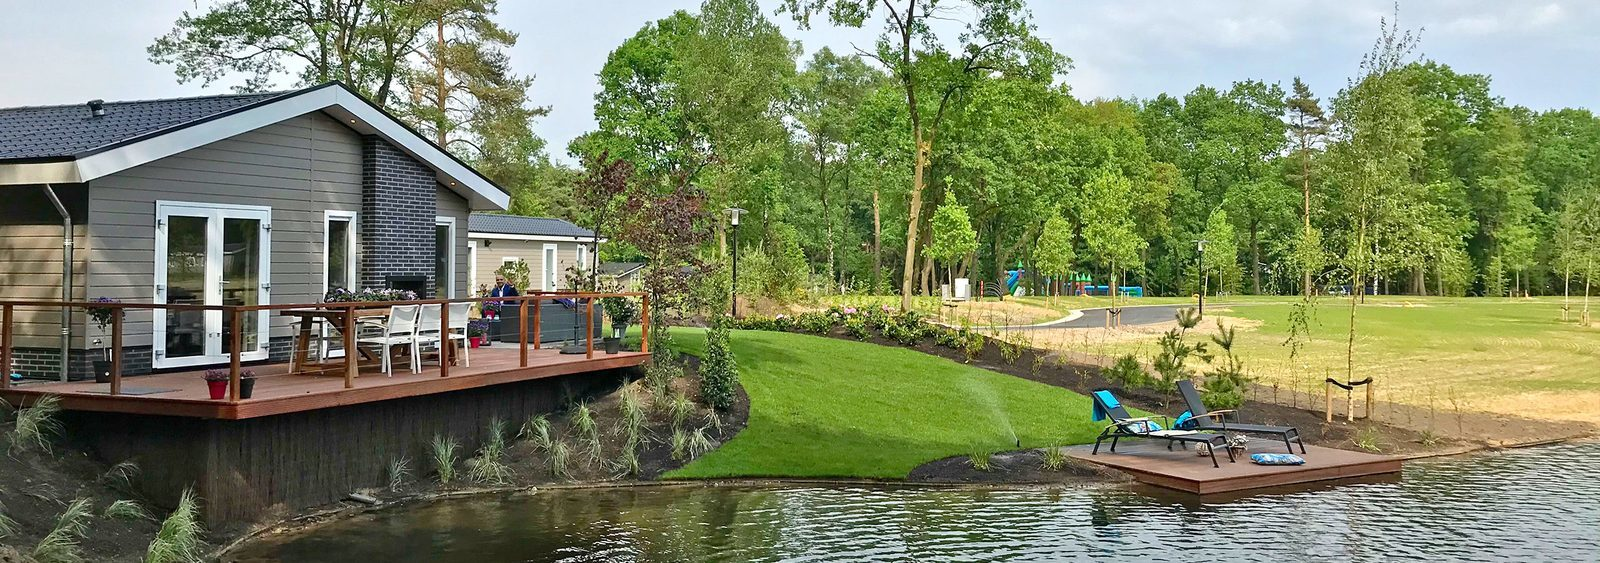 Holiday park near Apeldoorn